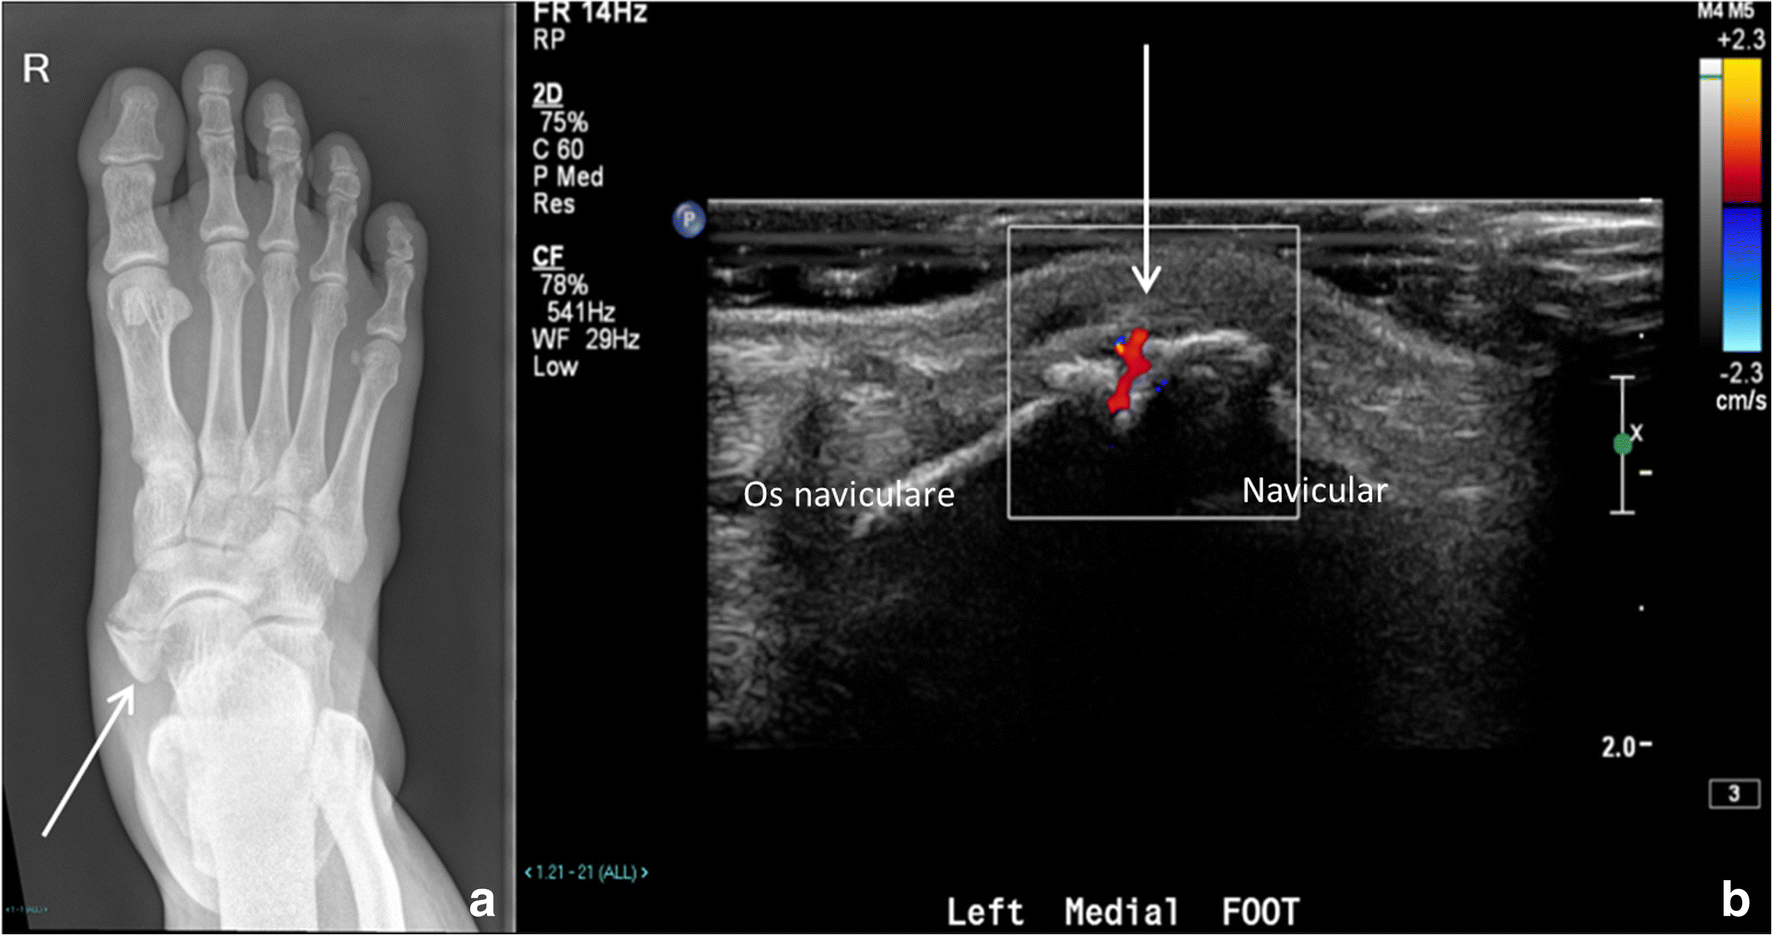 Figure 12 Accessory Ossicles Of The Foot An Imaging Conundrum Springerlink Foot movement that tips the soles medially, somewhat facing each other. figure 12 accessory ossicles of the